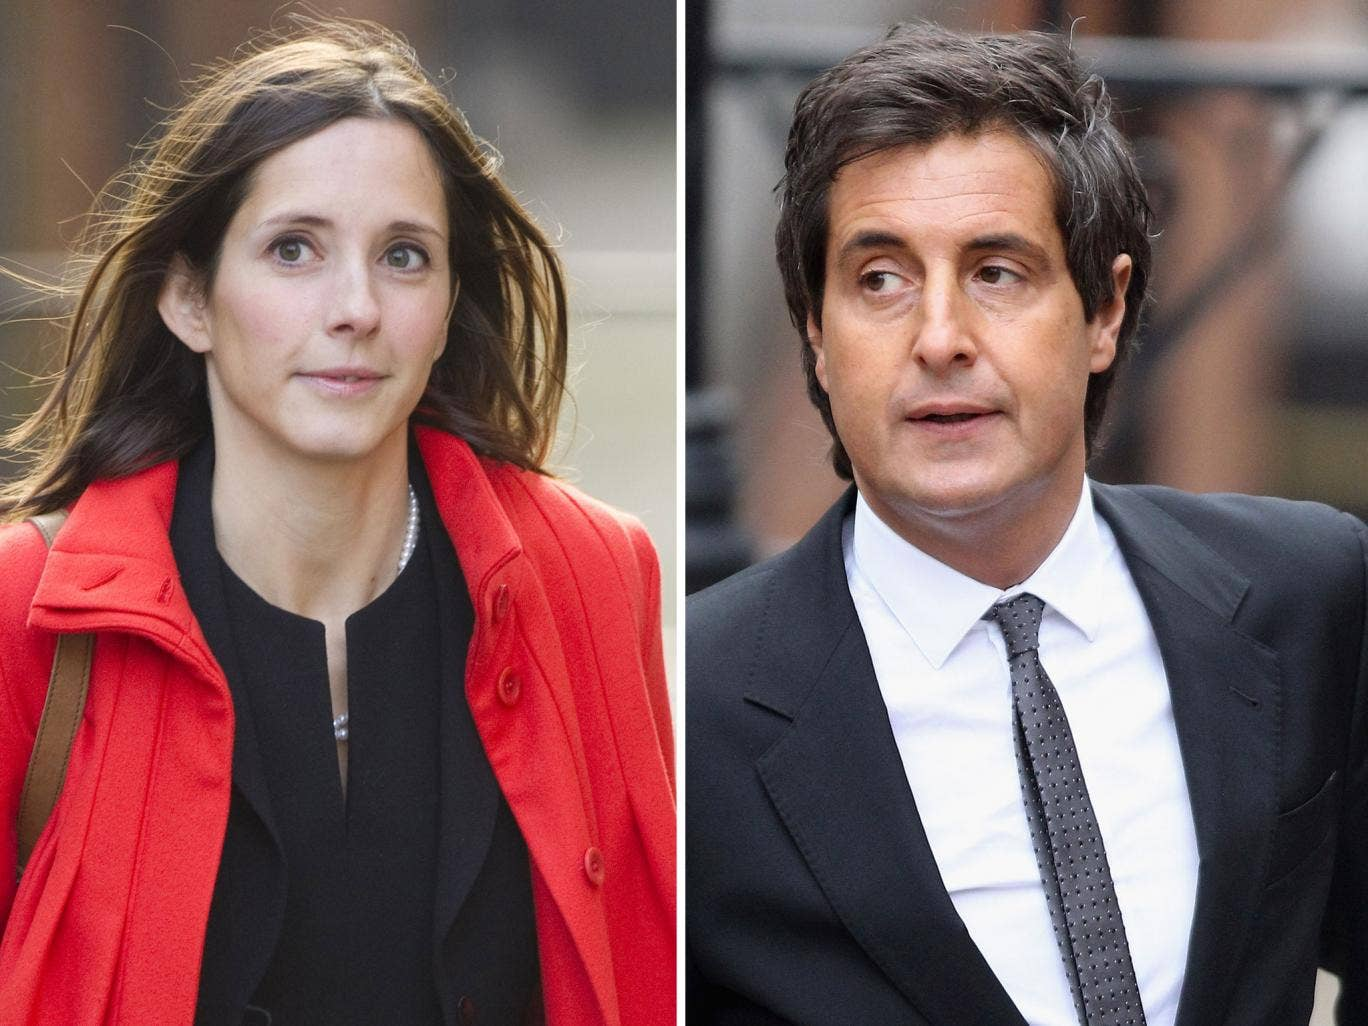 Carine Patry Hoskins and David Sherborne are accused of 'undermining the integrity of the inquiry'